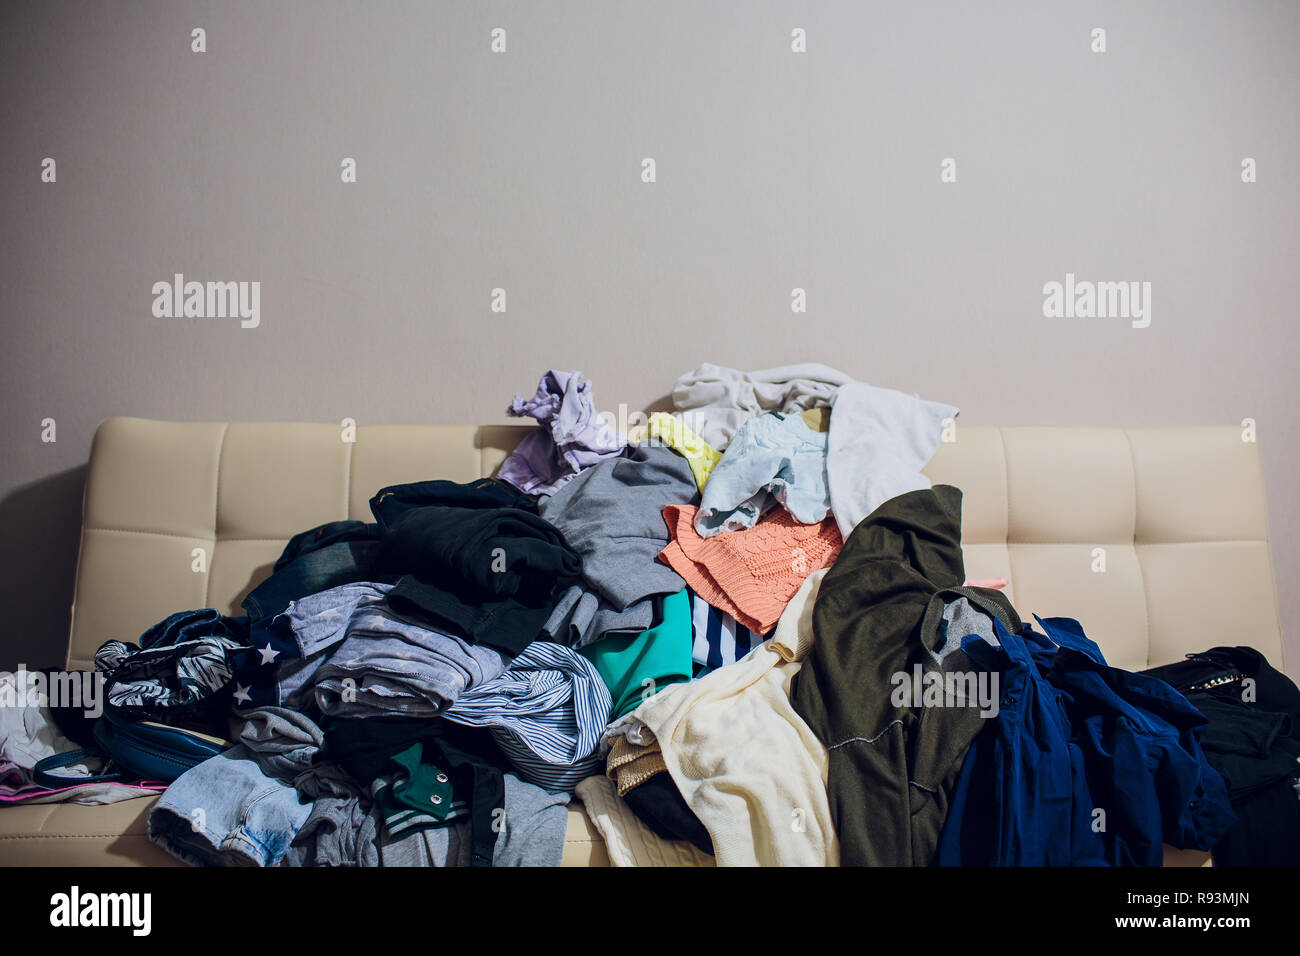 Messy clothes, lady bag and shoes scattered on leather sofa - Stock Image